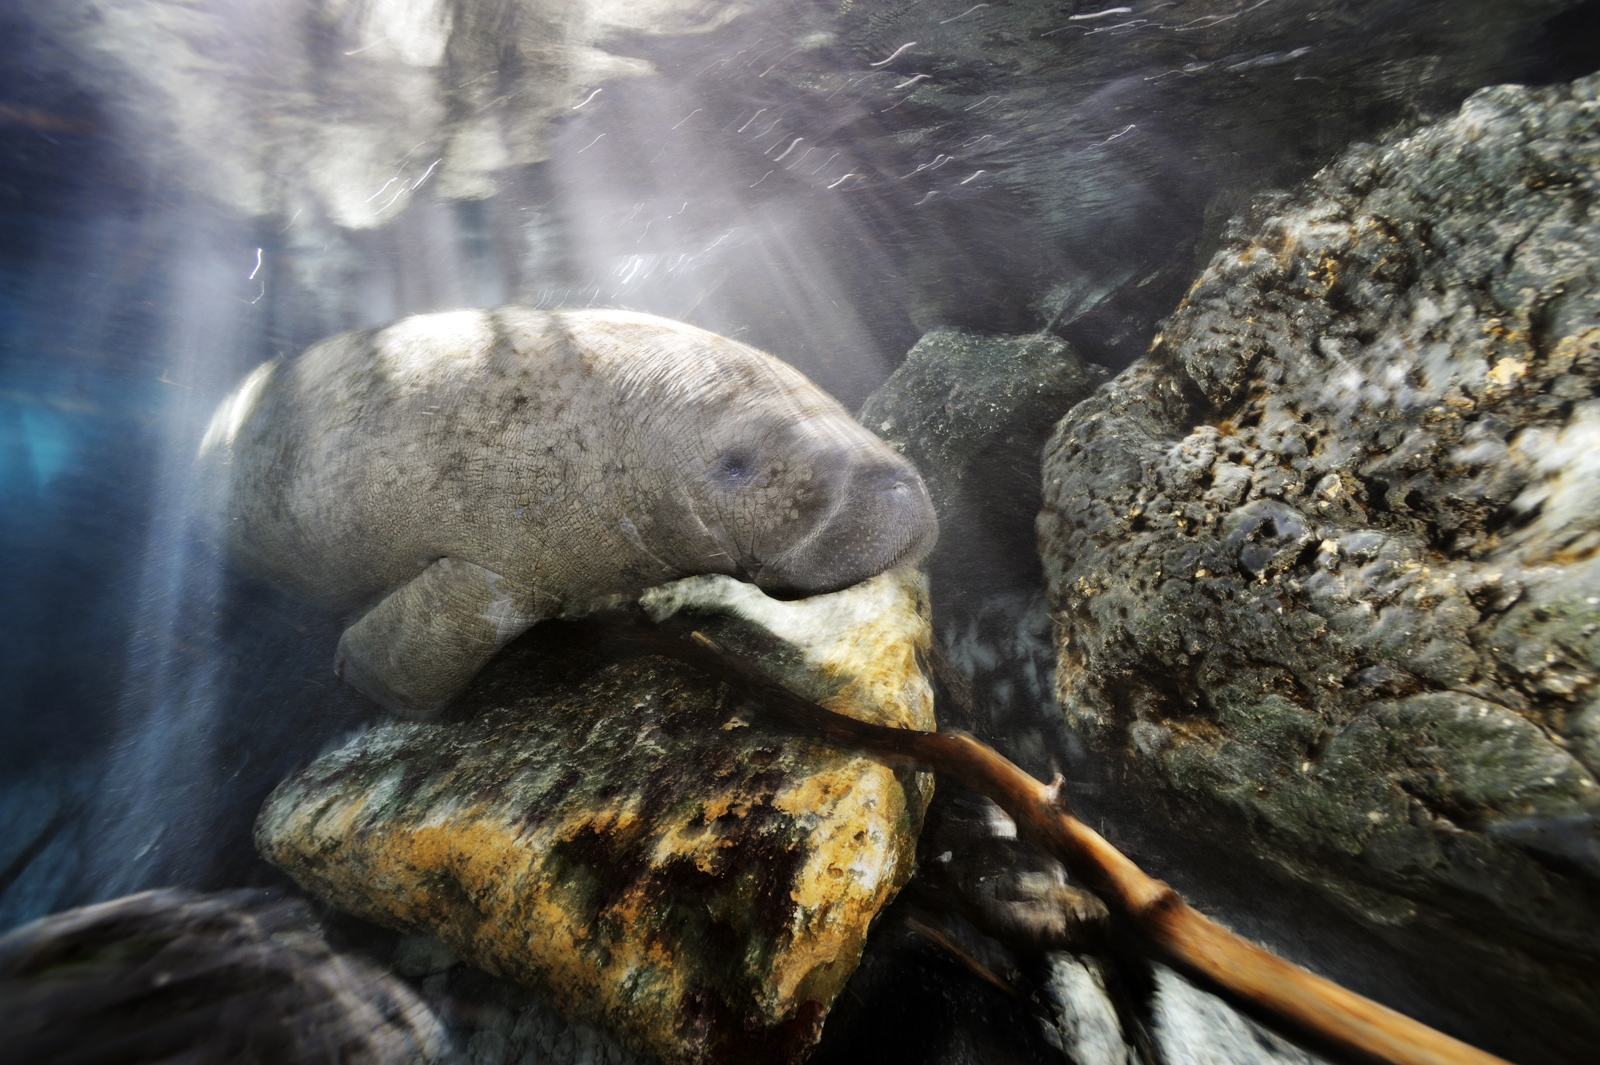 A Florida manatee swims through a channel into a freshwater spring late in the day.<div class='credit'><strong>Credit:</strong> A Florida manatee swims through a channel into a freshwater spring late in the day.</div>